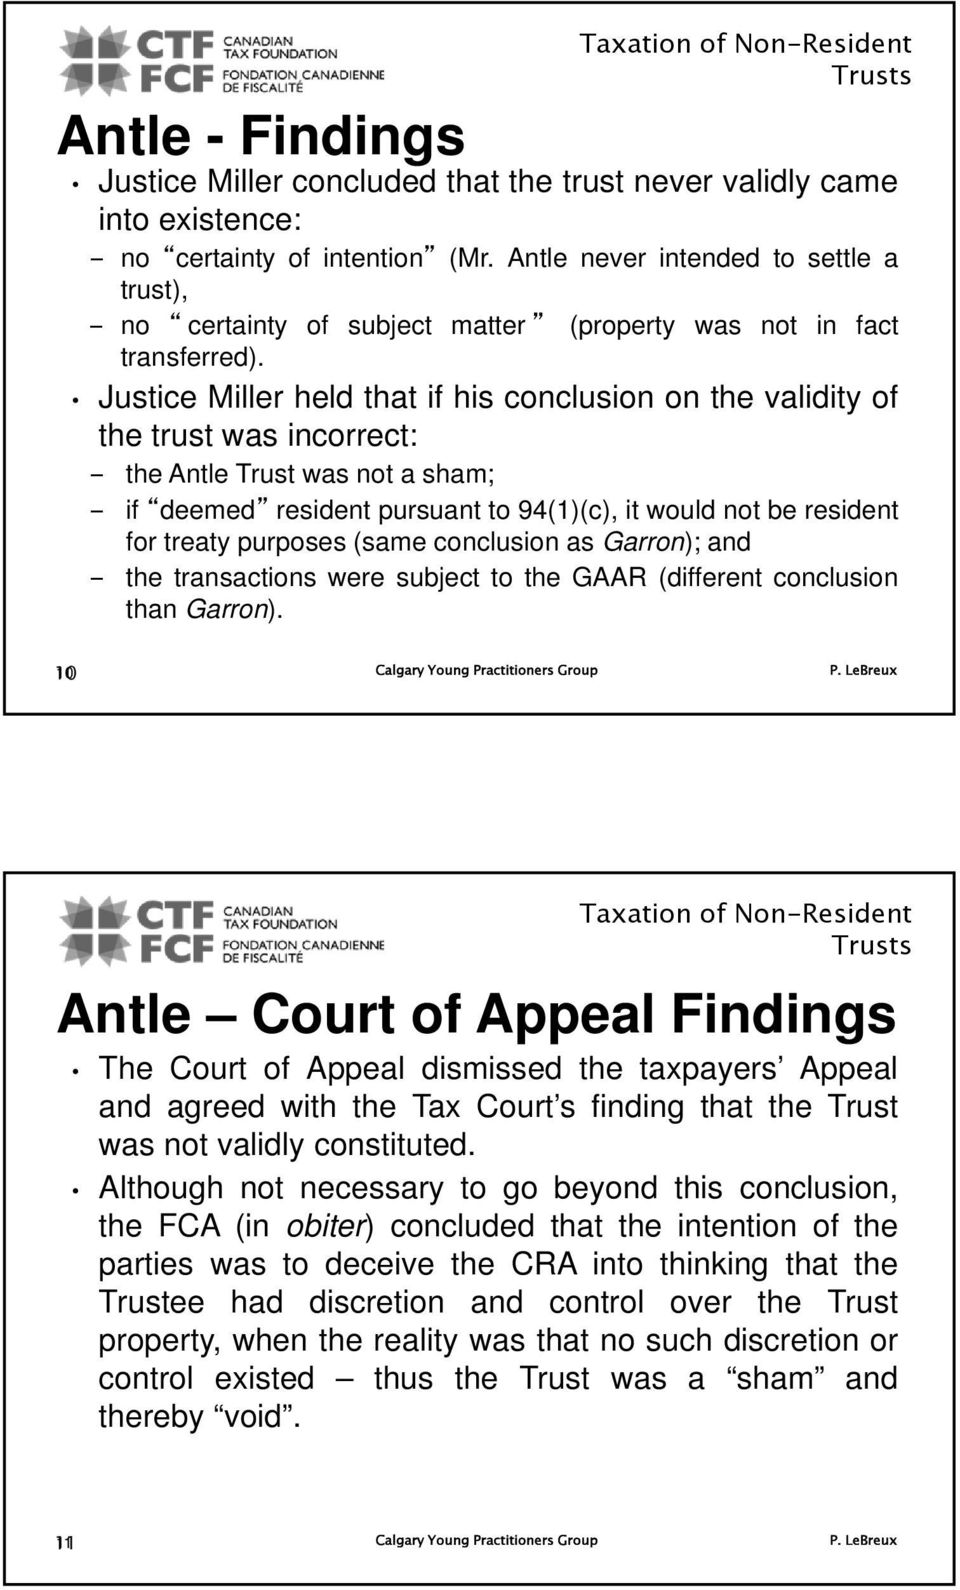 Justice Miller held that if his conclusion on the validity of the trust was incorrect: the Antle was not a sham; if deemed resident pursuant to 94(1)(c), it would not be resident for treaty purposes